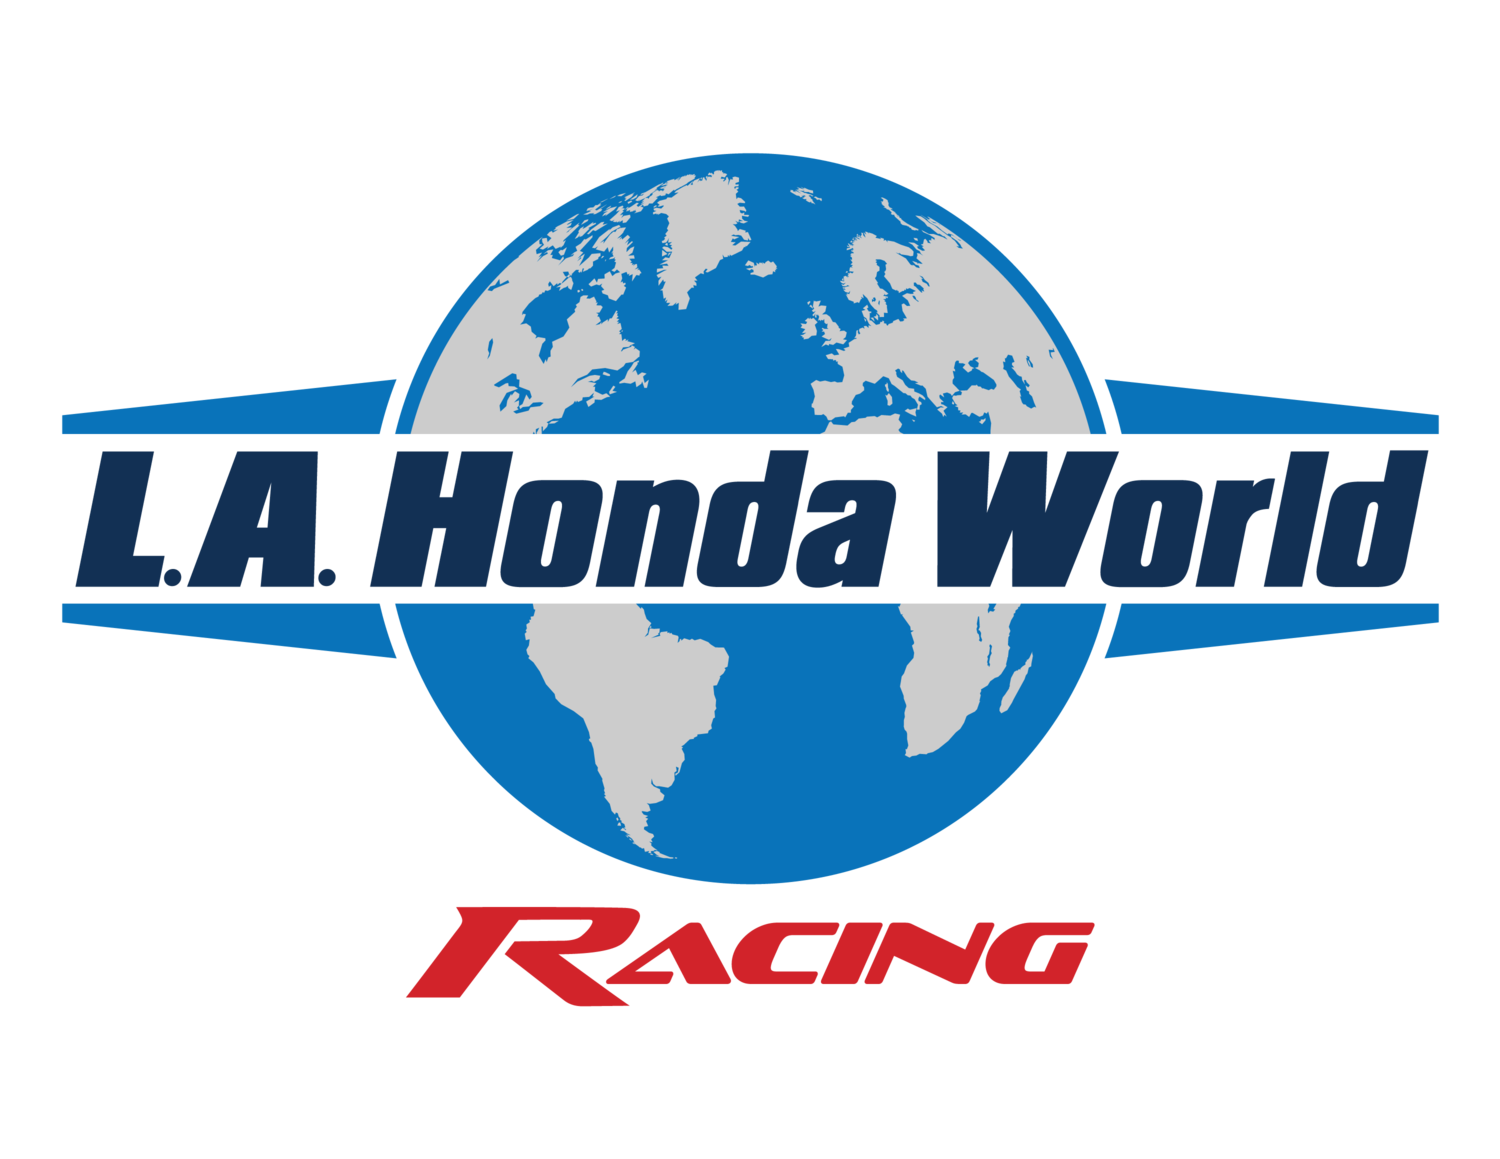 L.A. Honda World Racing